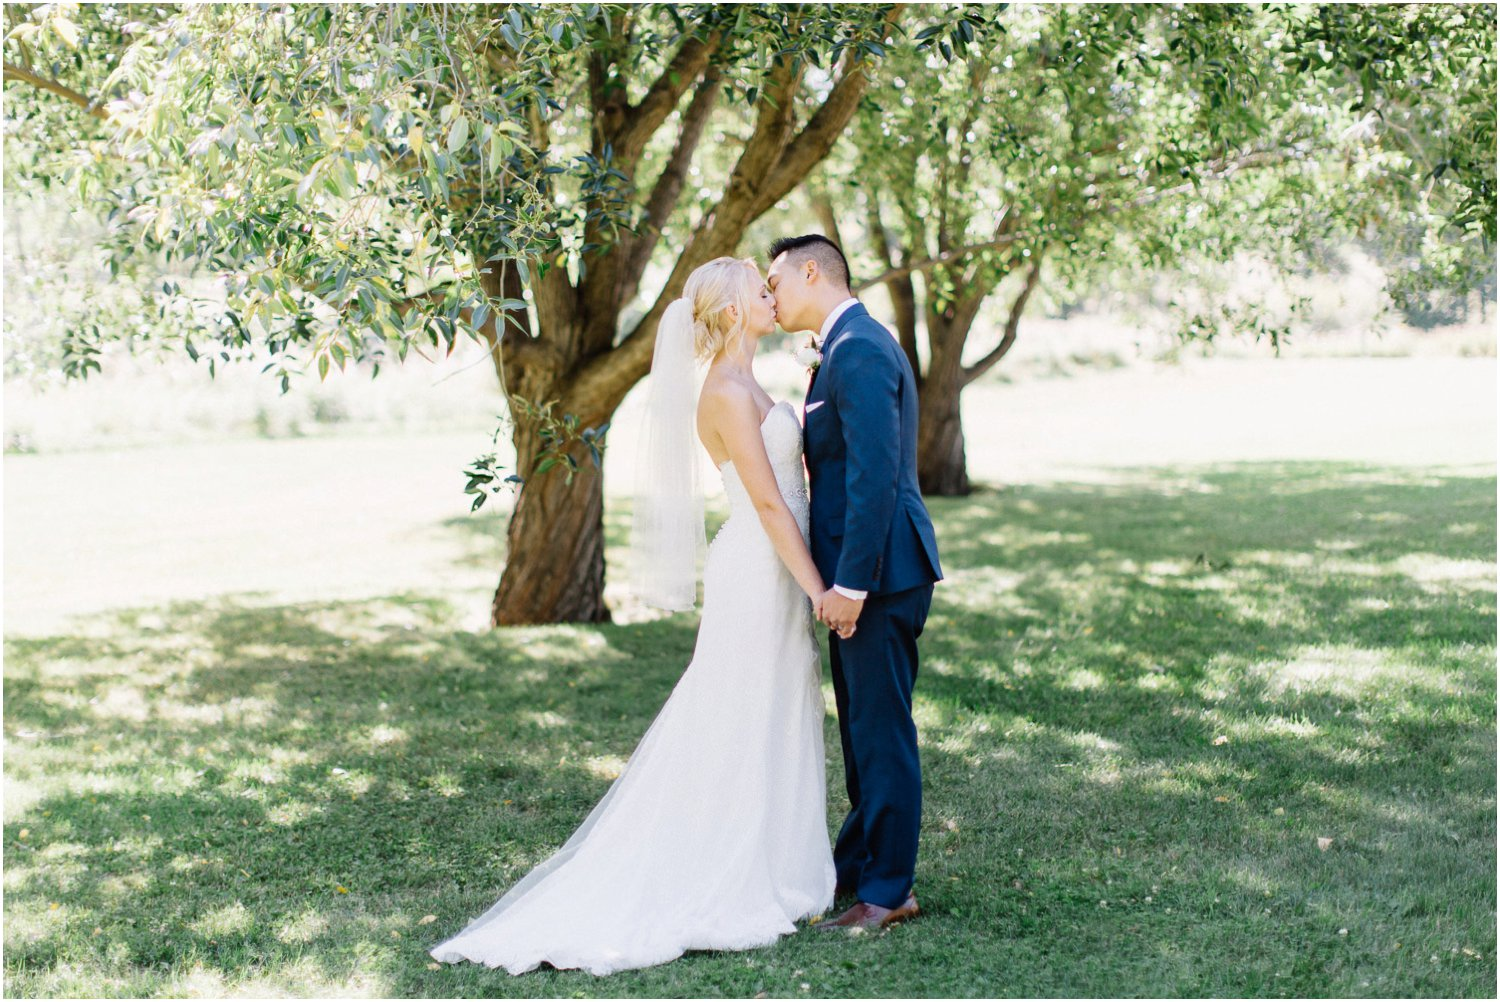 Wedding at hamptons golf course - Calgary Wedding Photographer_5016